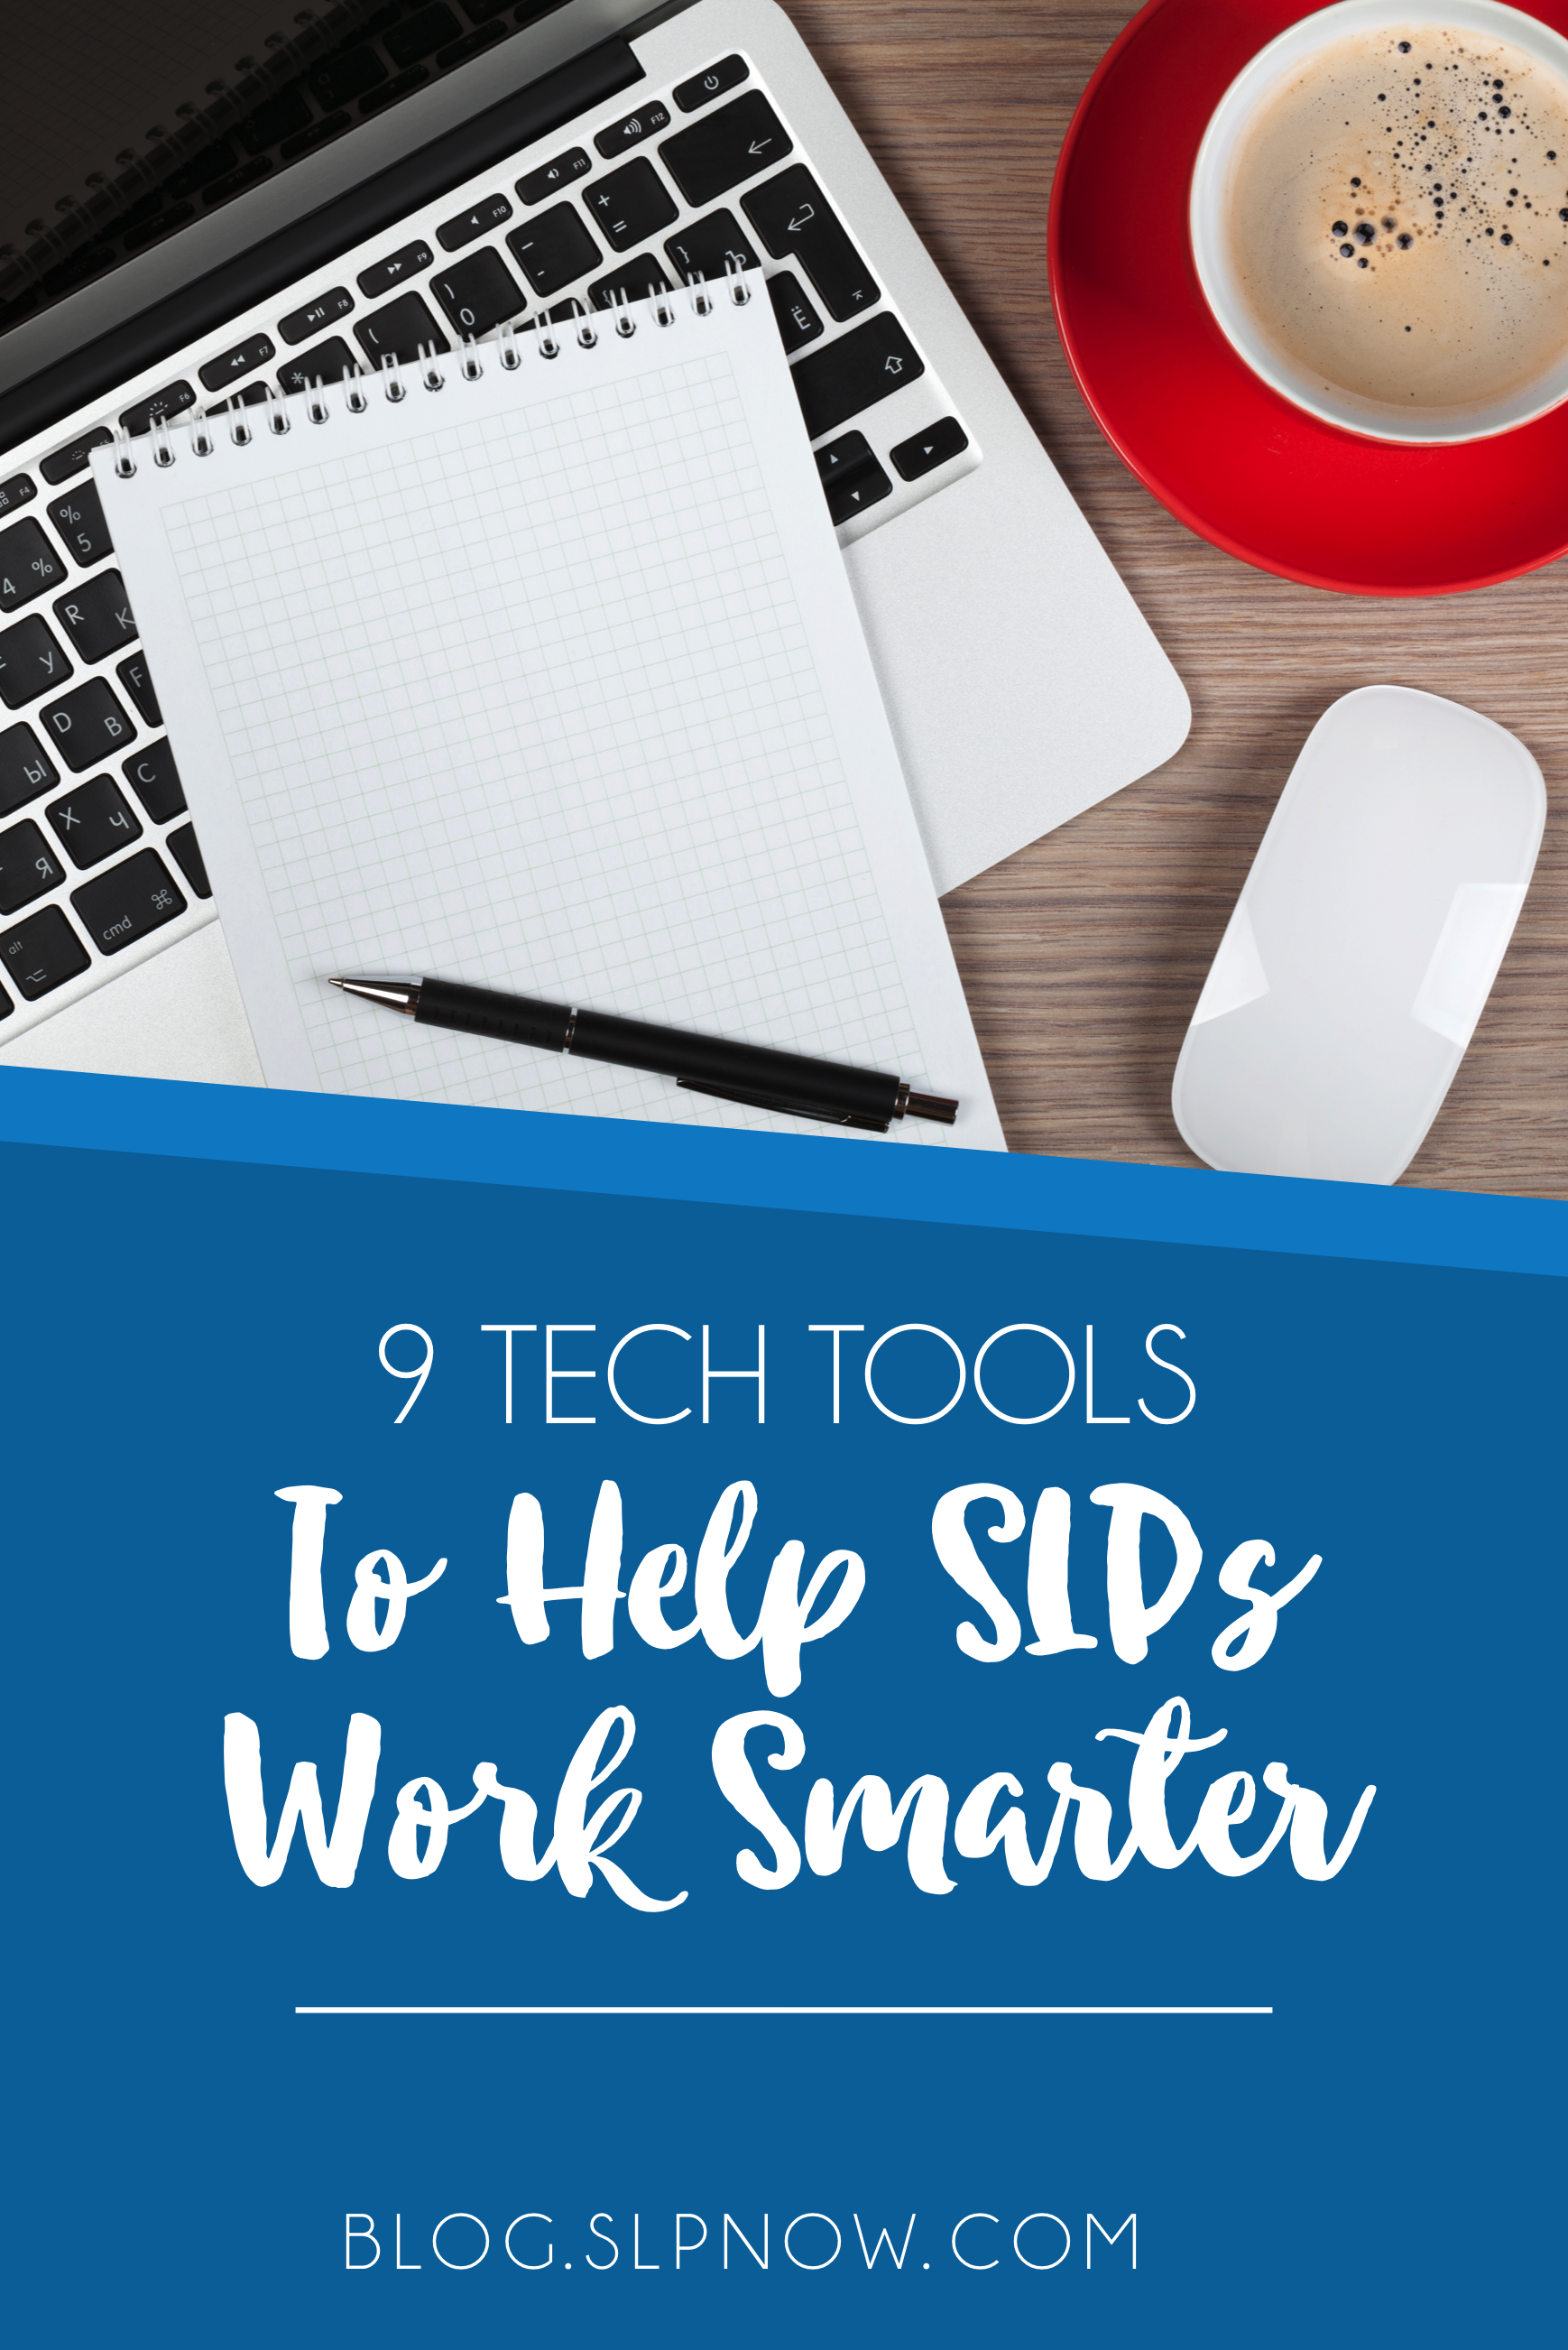 tools for slps to work smarter tech edition slp now blog even as slps we need to work smarter and not harder check out this